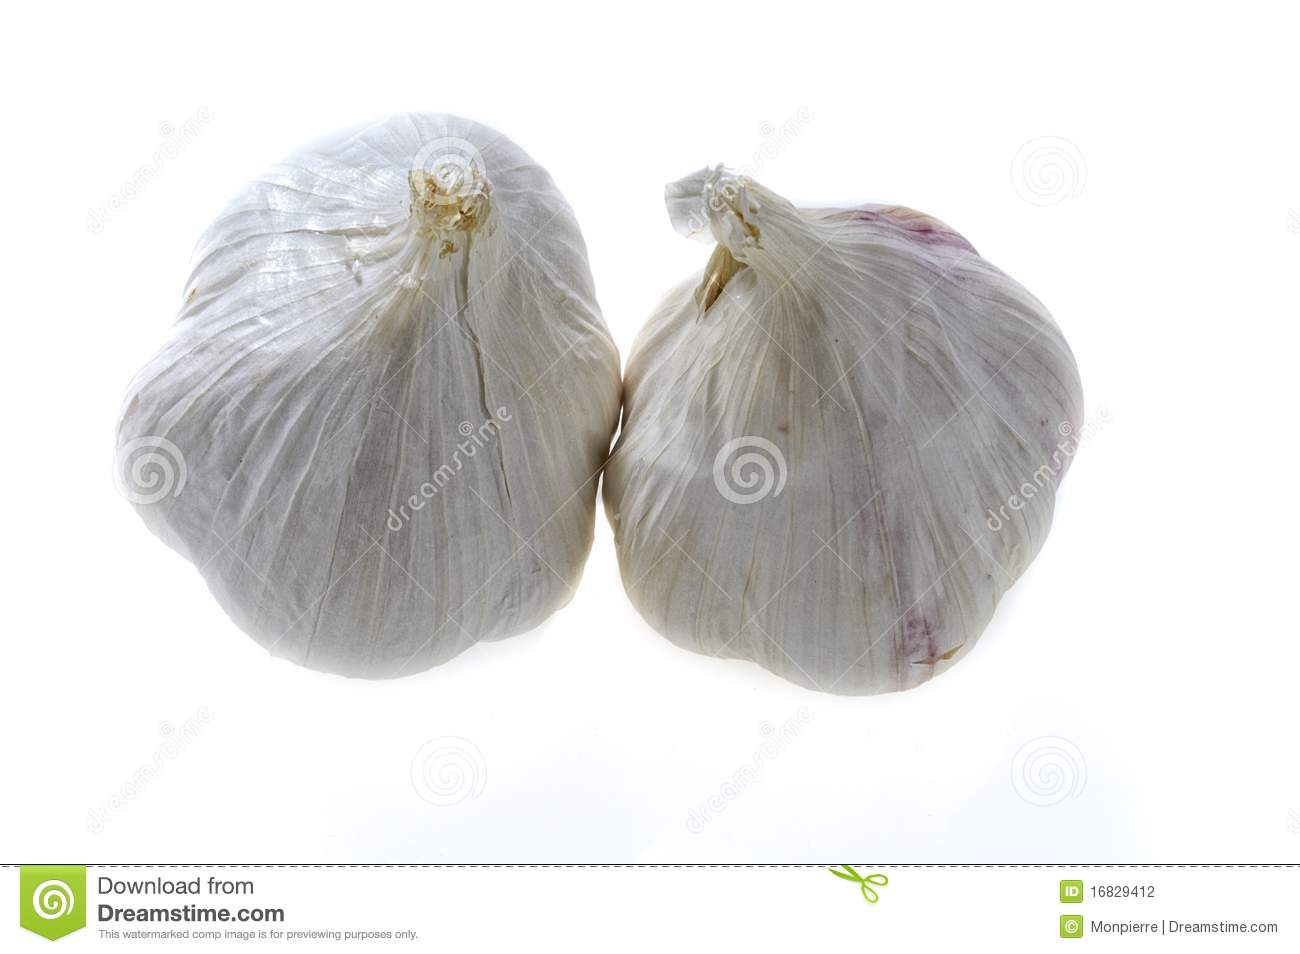 Garlic Cloves Stock Photography - Image: 16829412